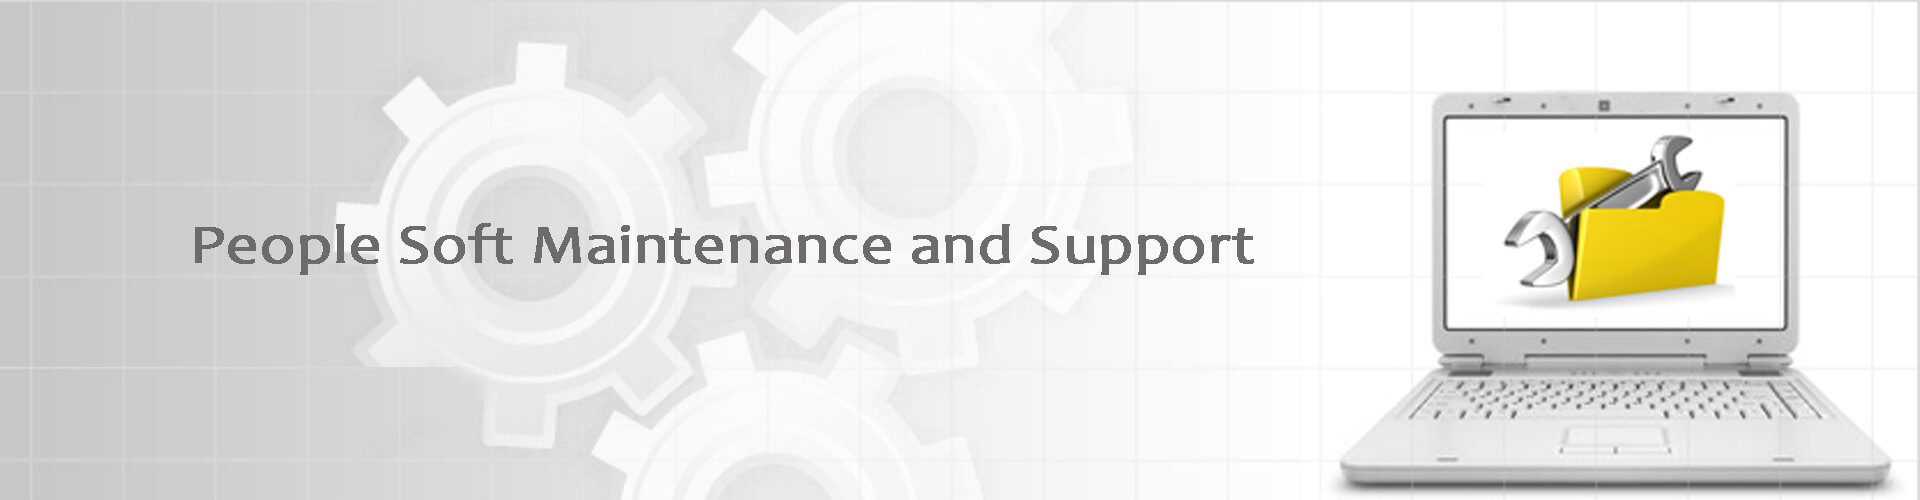 ORACLE PEOPLE SOFT MAINTENANCE AND SUPPORT